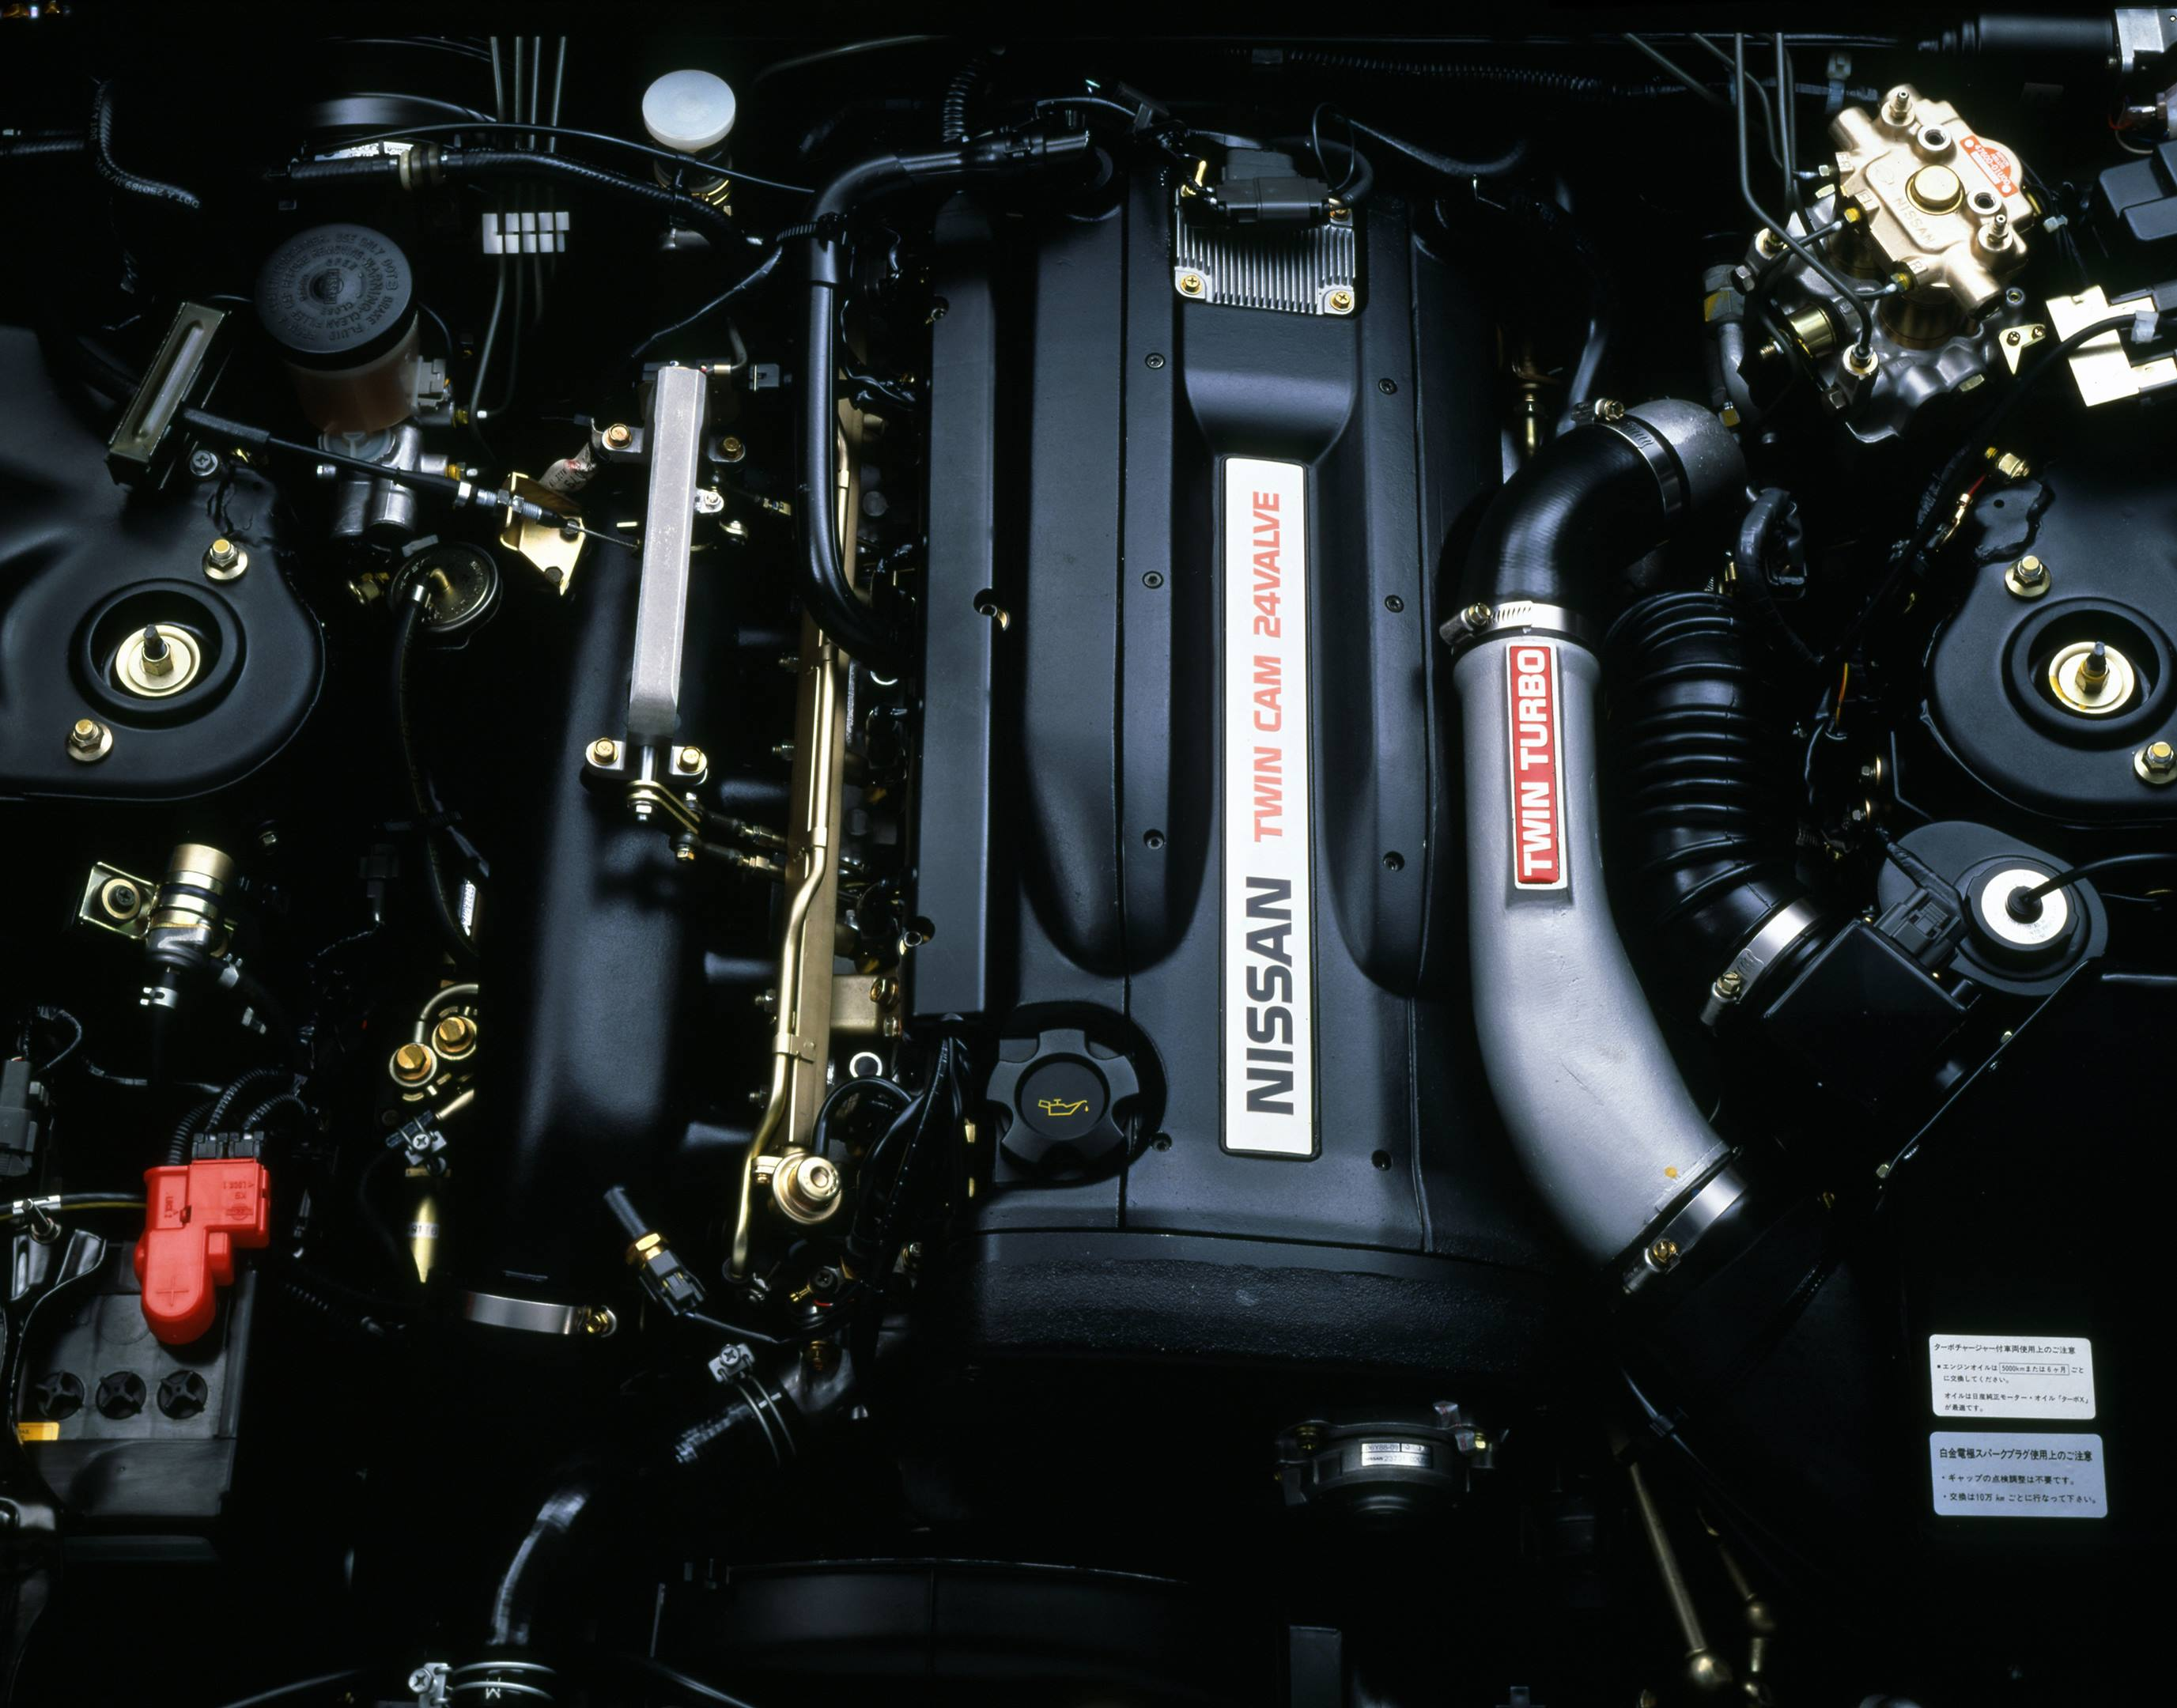 Nissan RB26DETT gt-r engine turbo